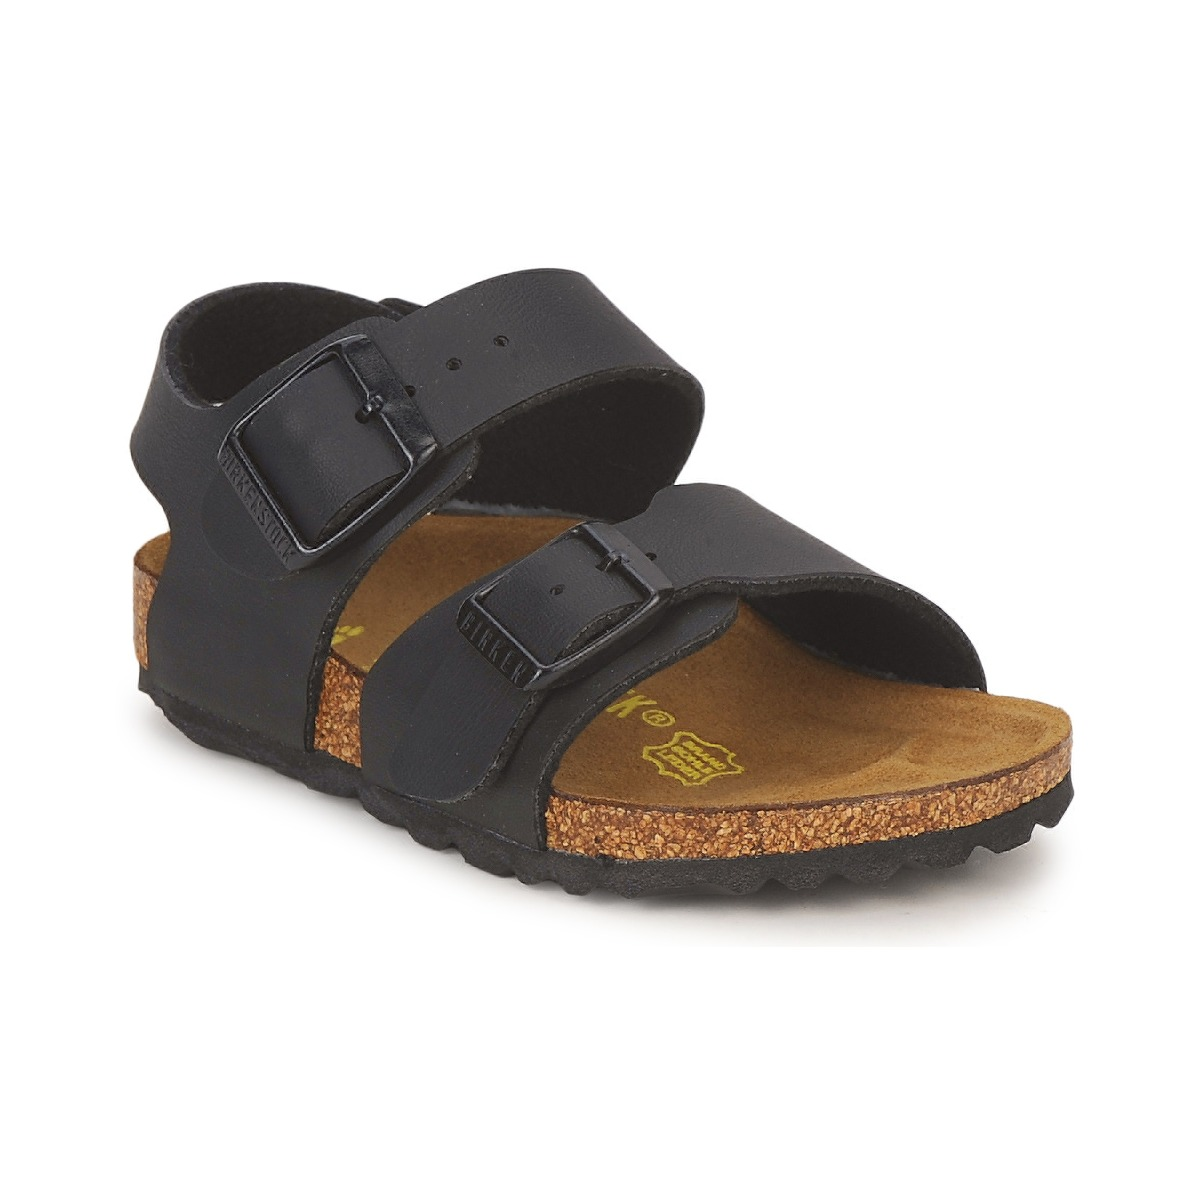 Sandals Birkenstock NEW YORK Black